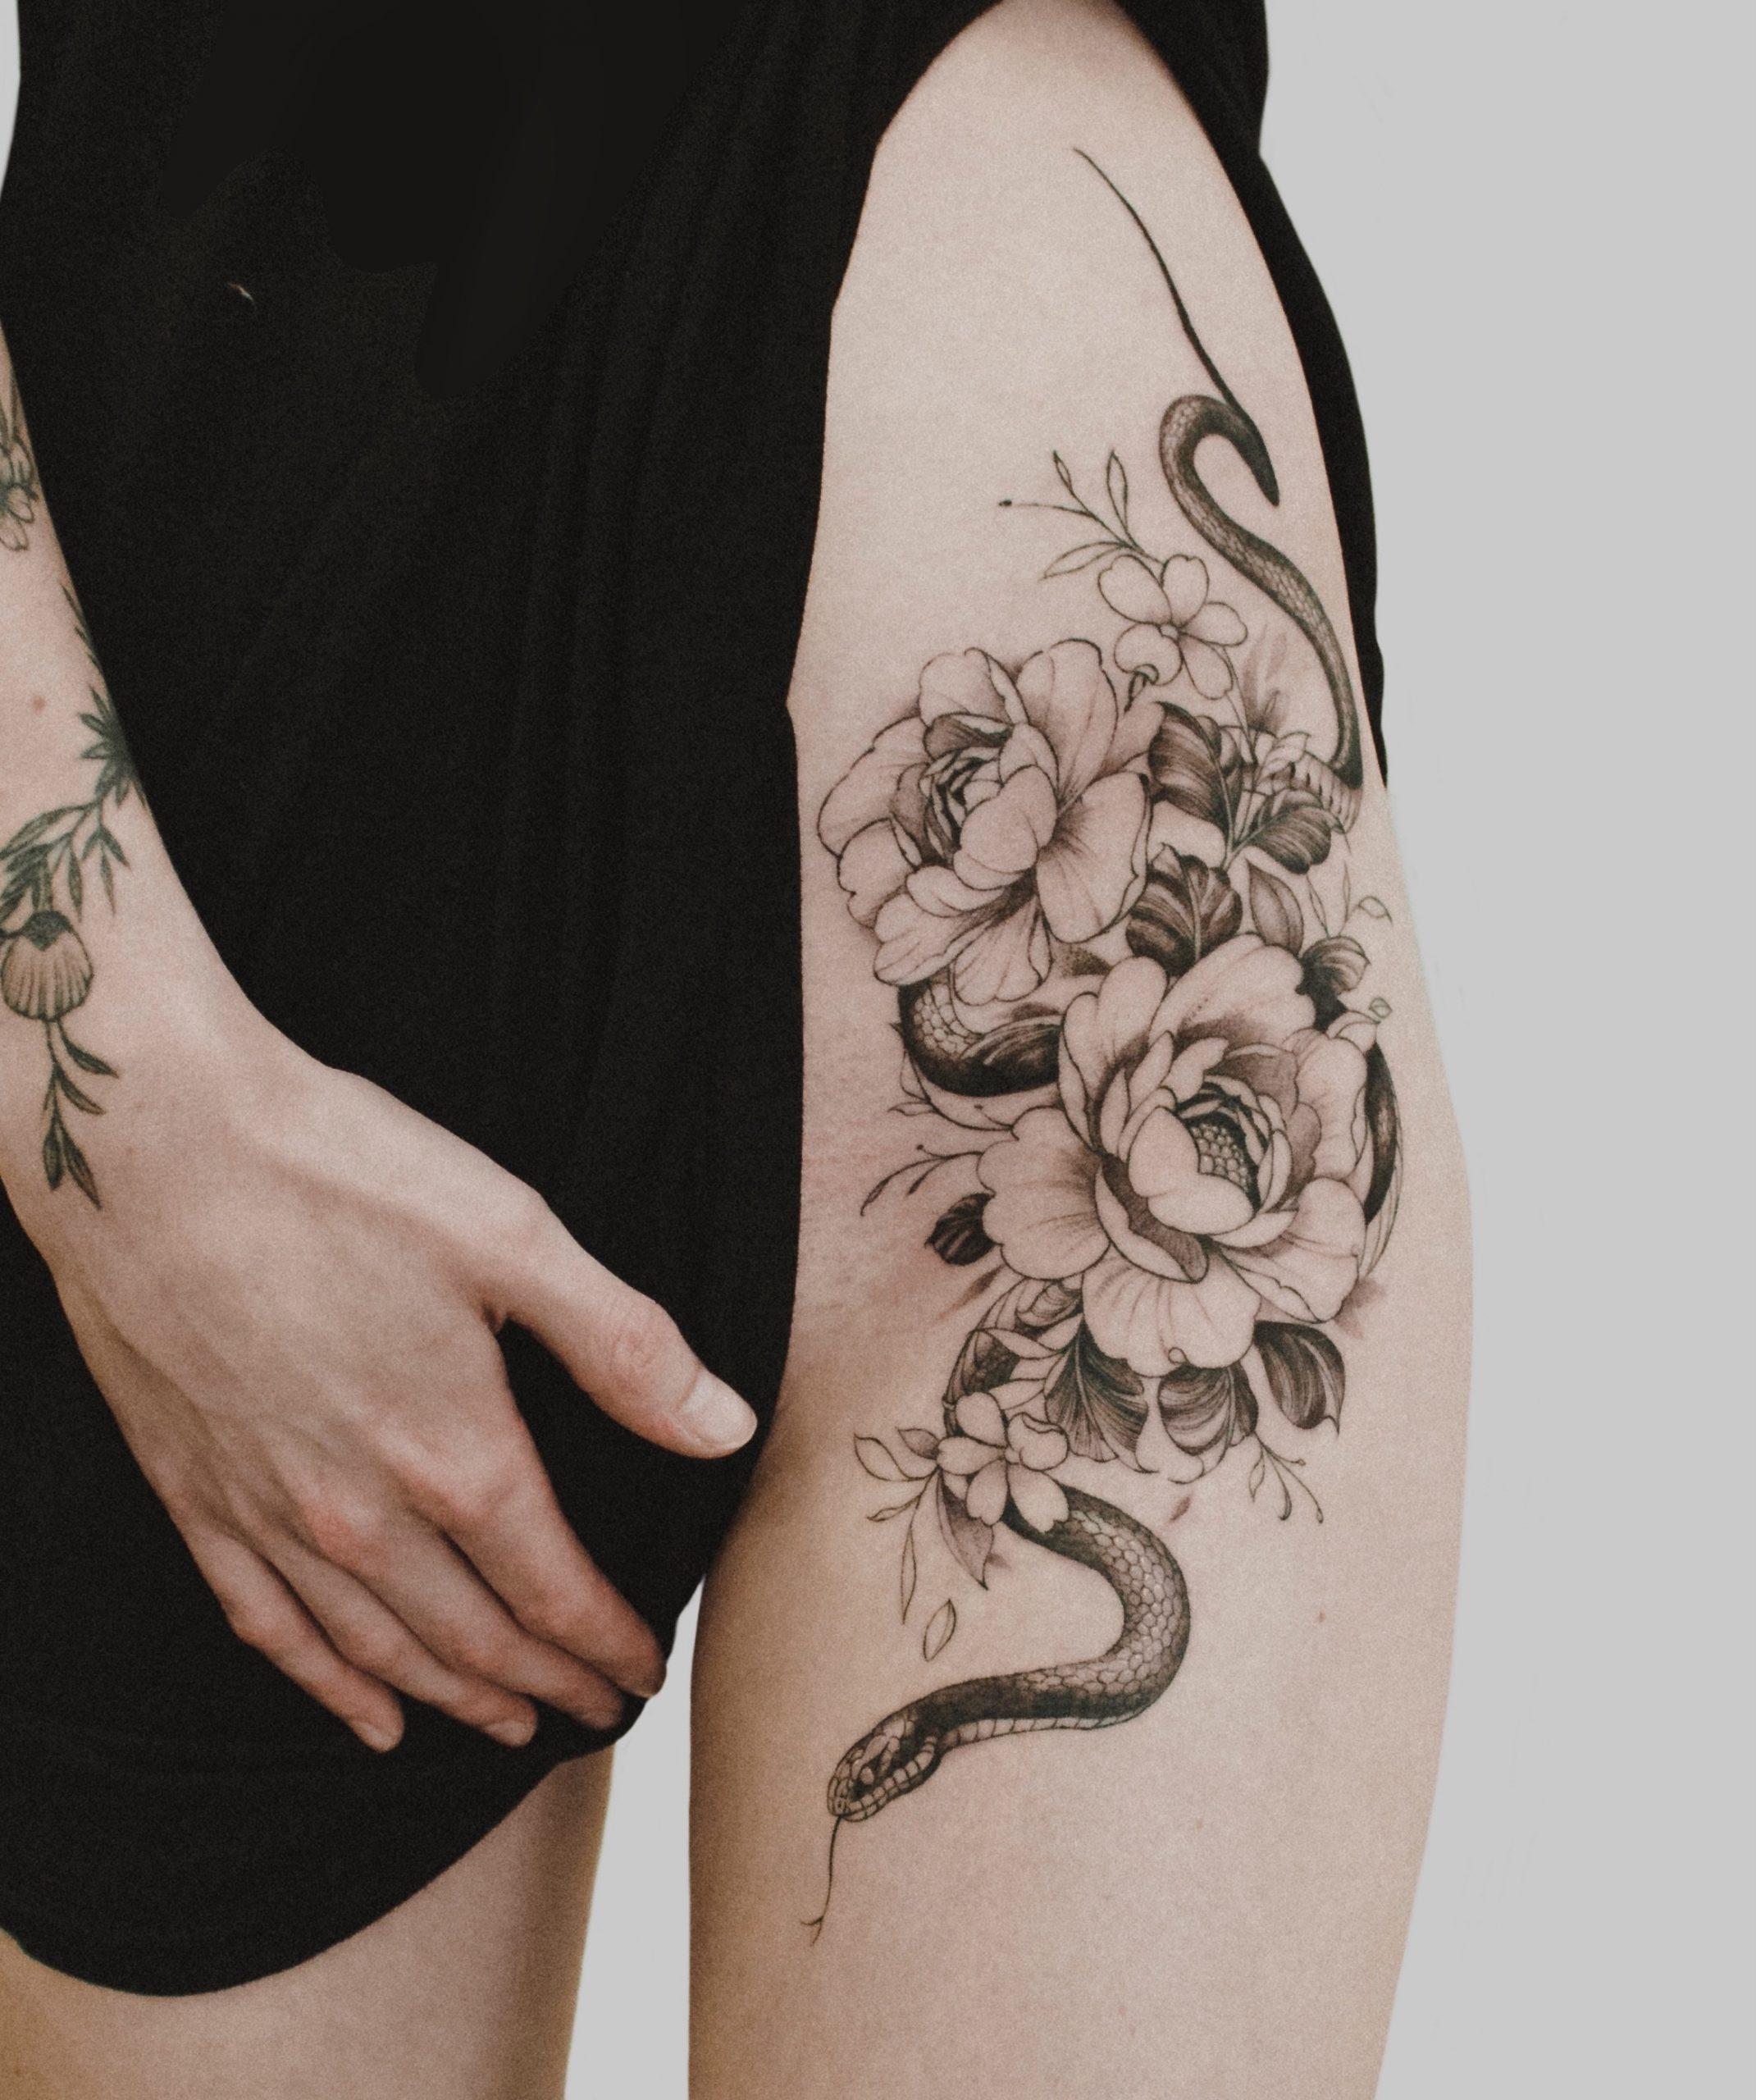 Artist Of The Month: Diego Cassel AKA Old Boy Tattoos